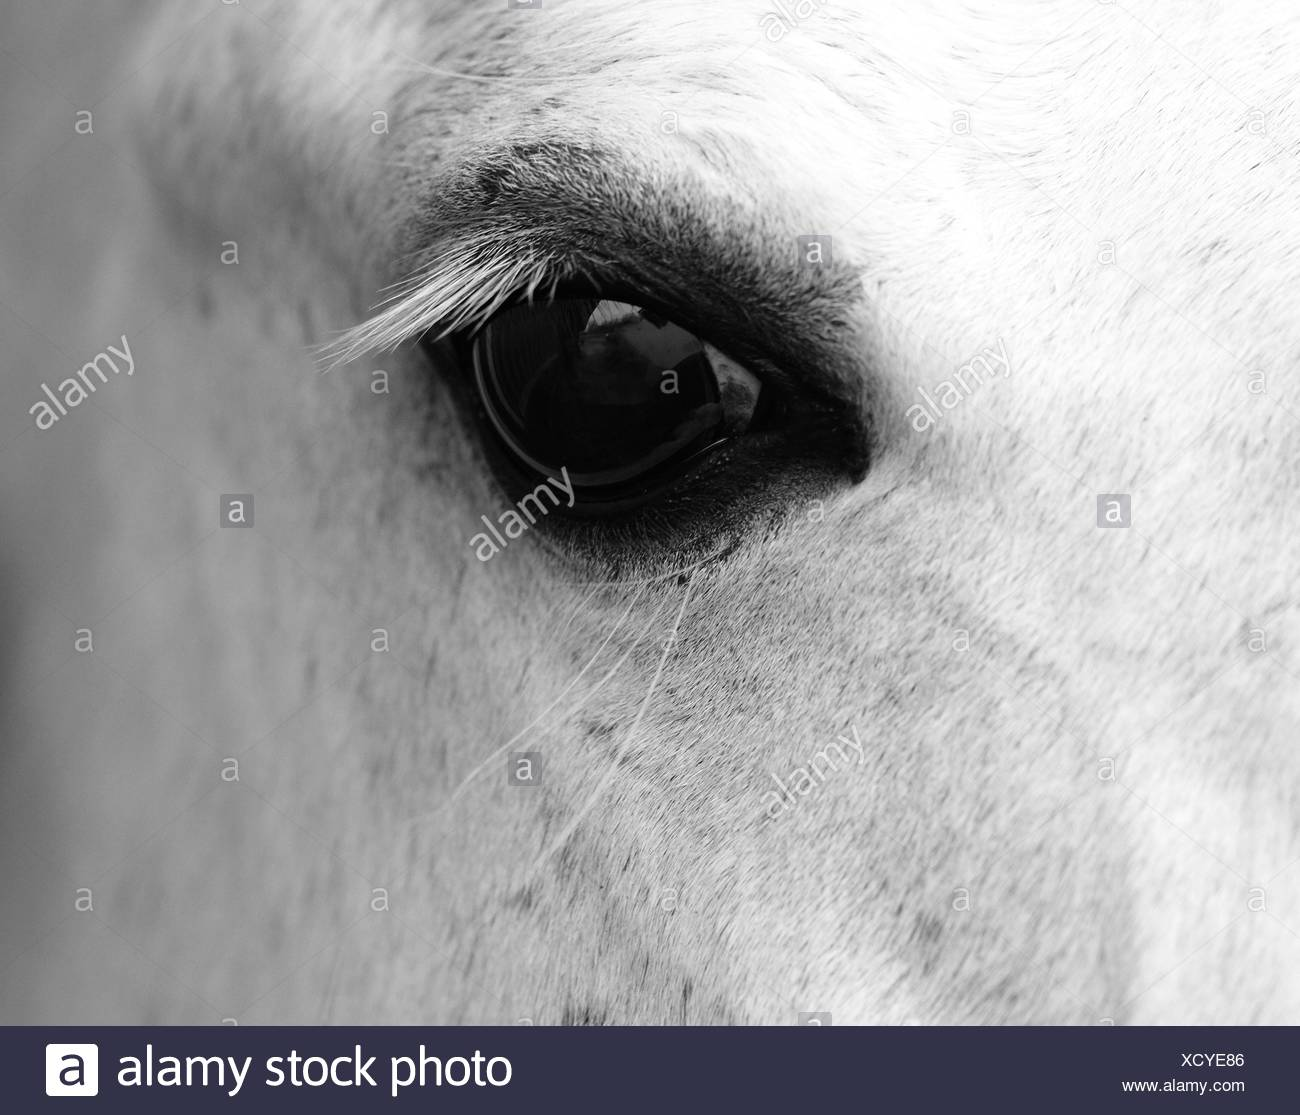 Detail of white horse head with long eye-lashes - Stock Image